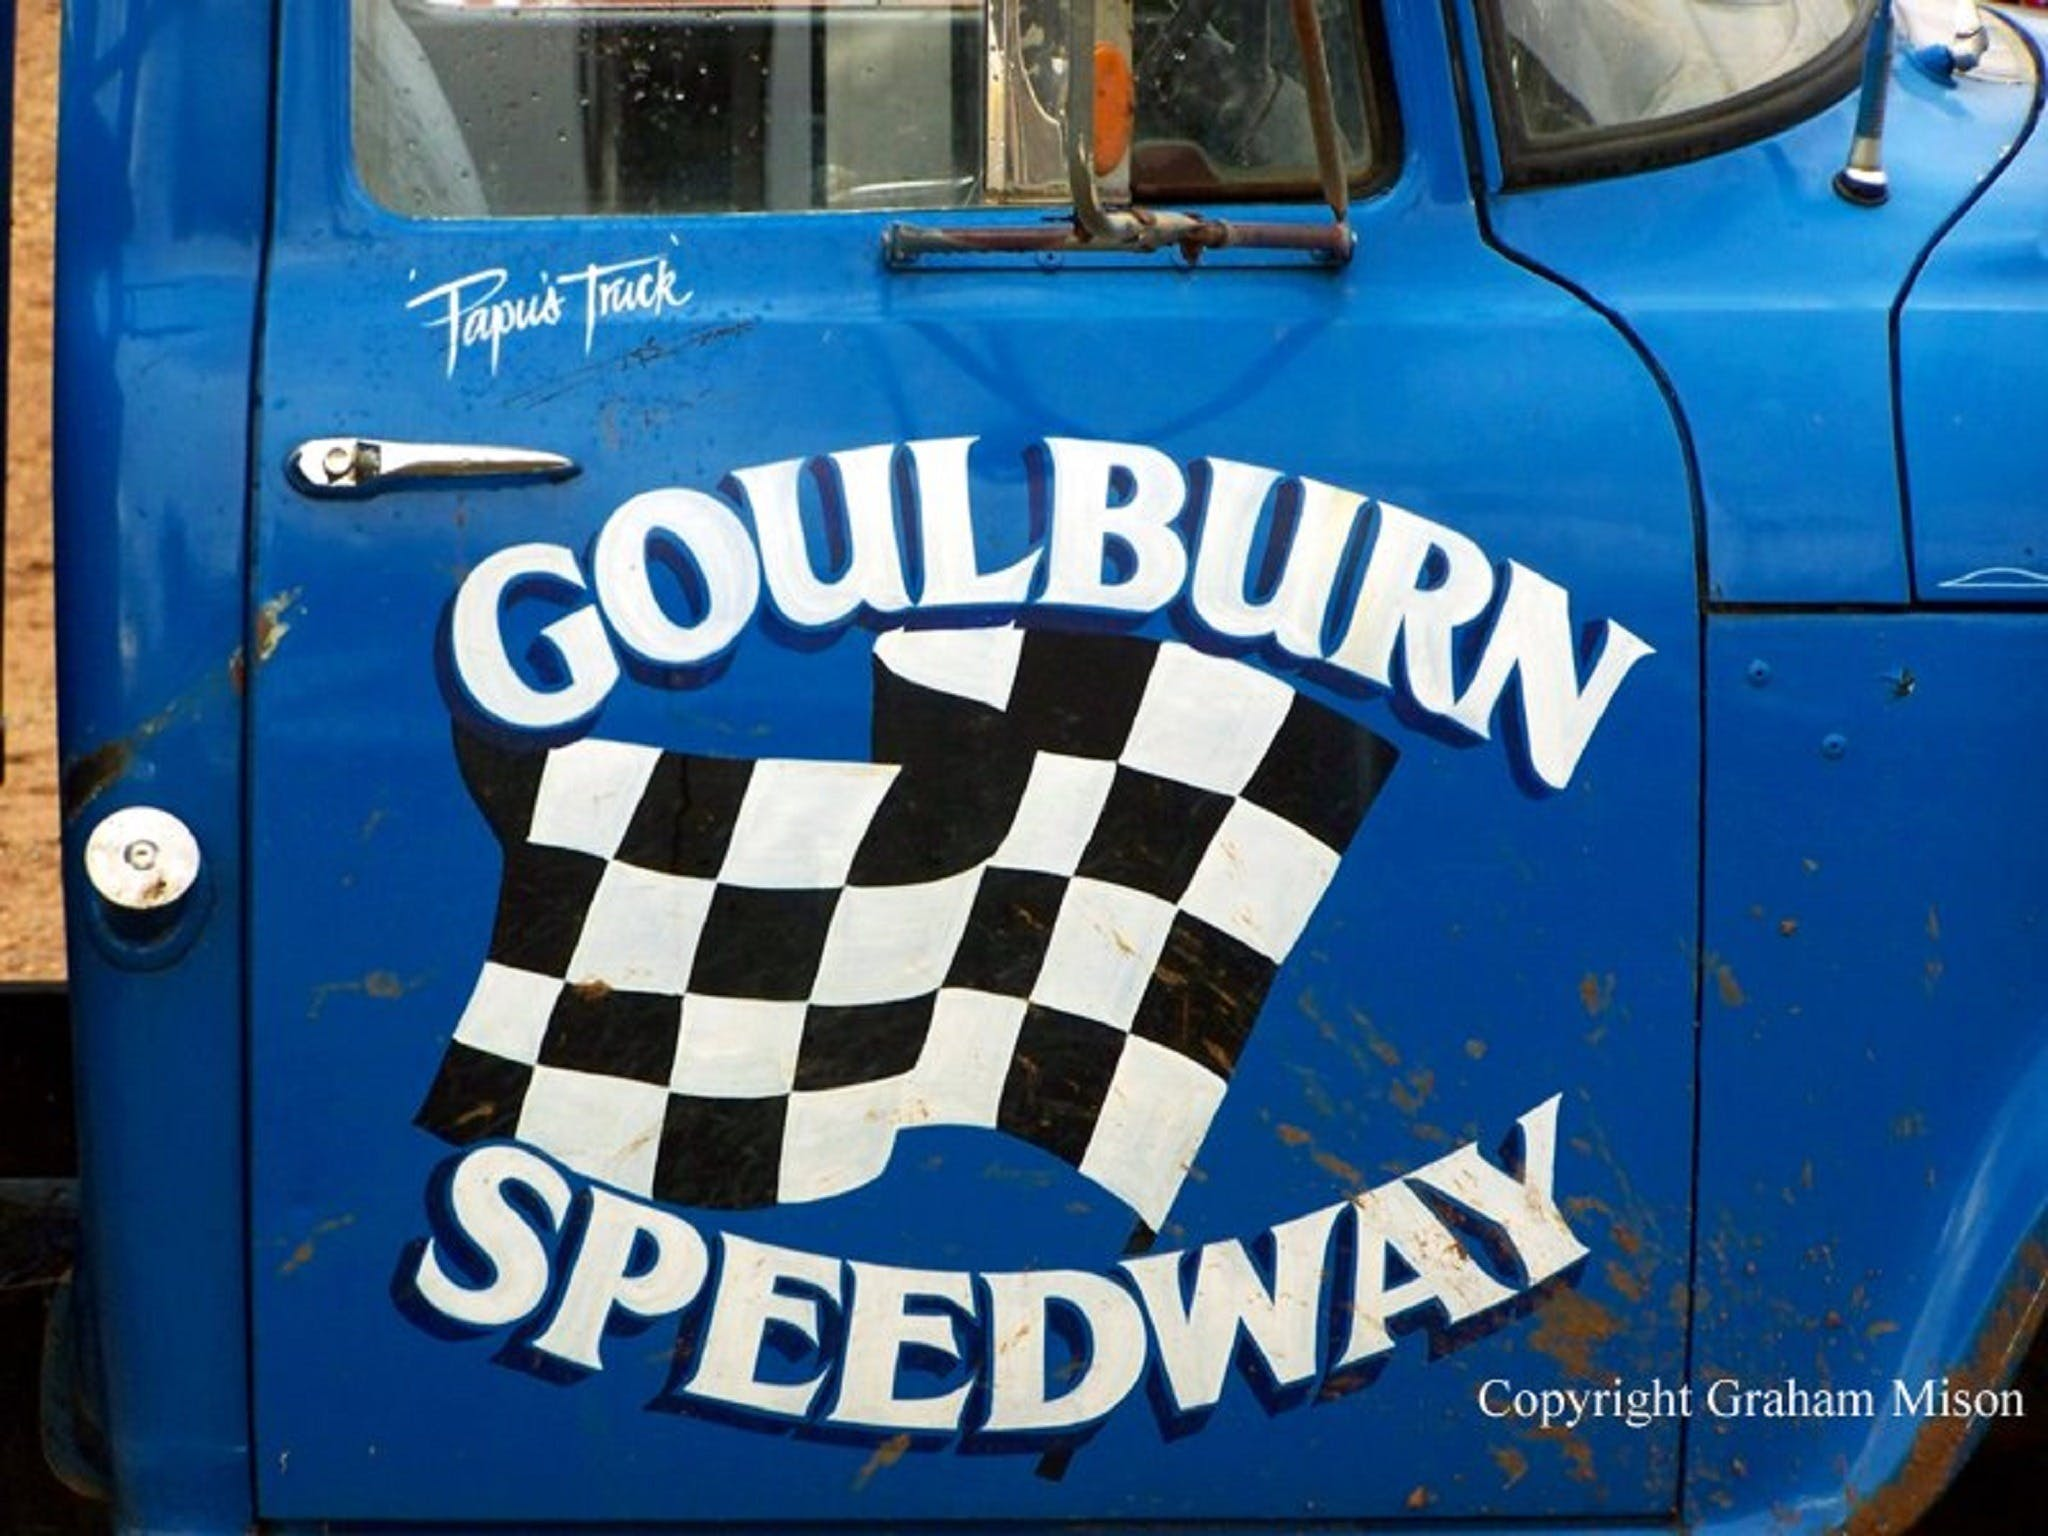 50 years of racing at Goulburn Speedway - QLD Tourism